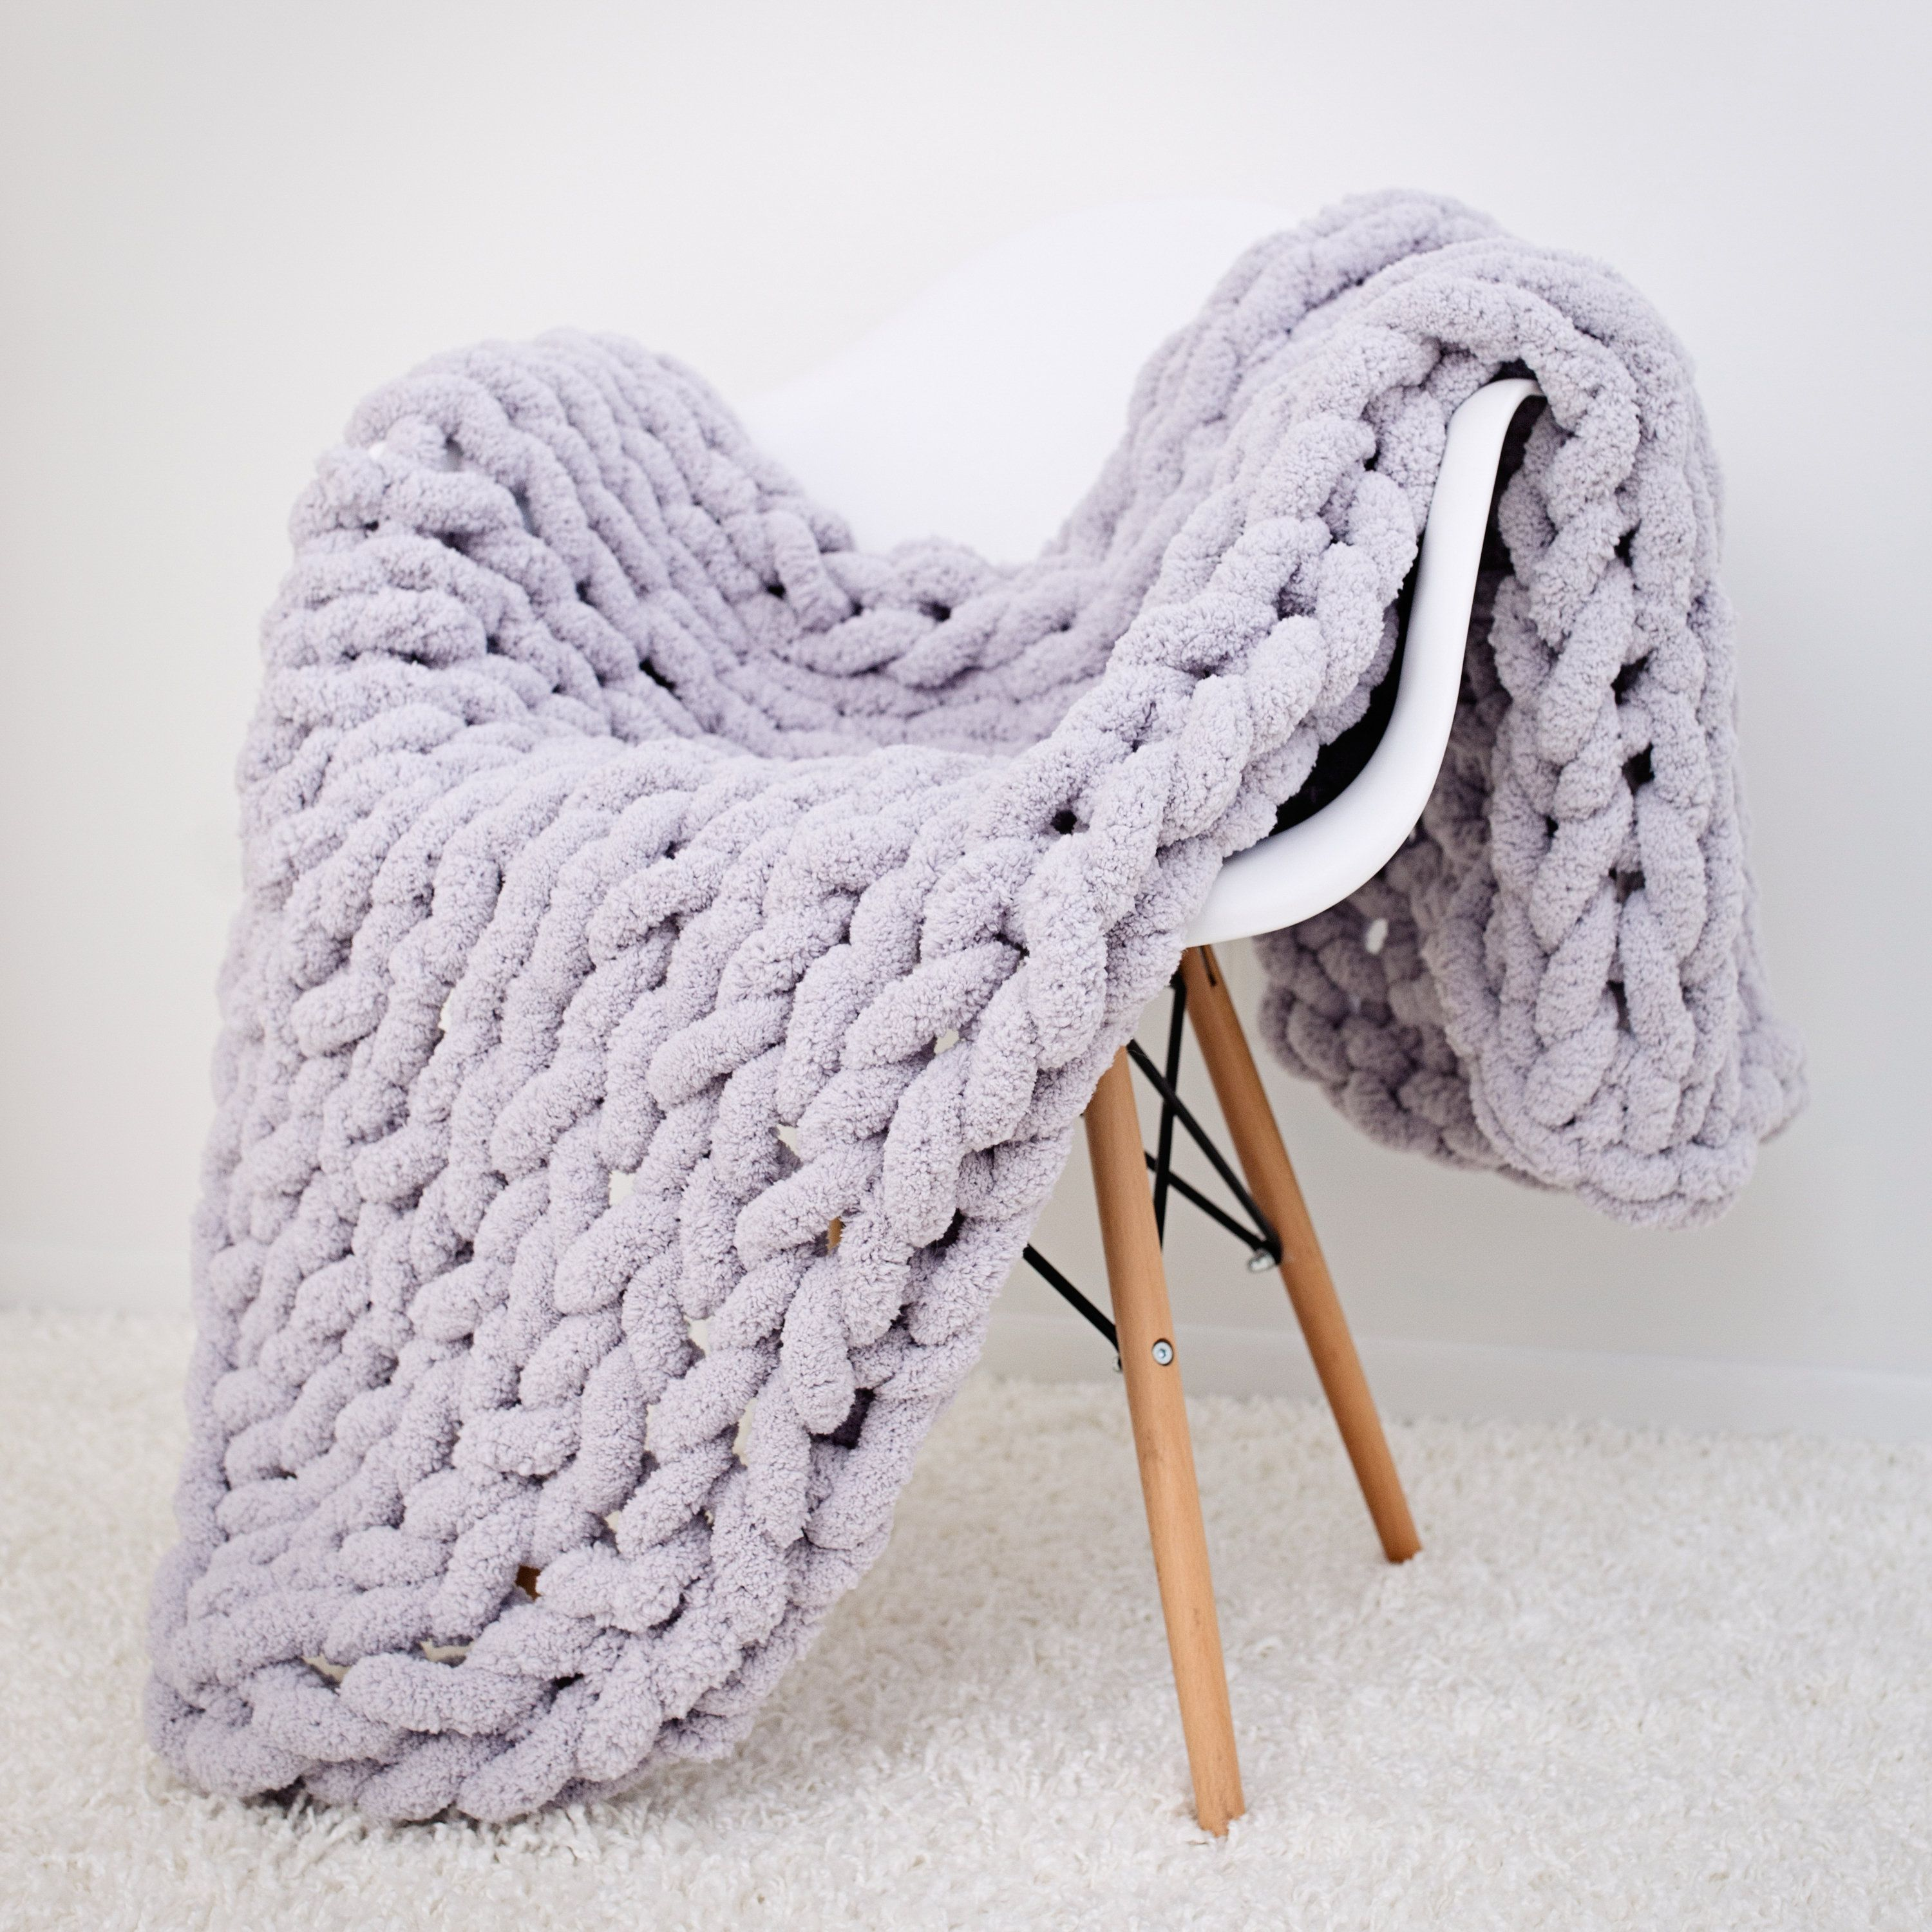 Chunky Knitted Blanket Area Rug Mat Thick Soft Yarn Mattress Cover Home Decor